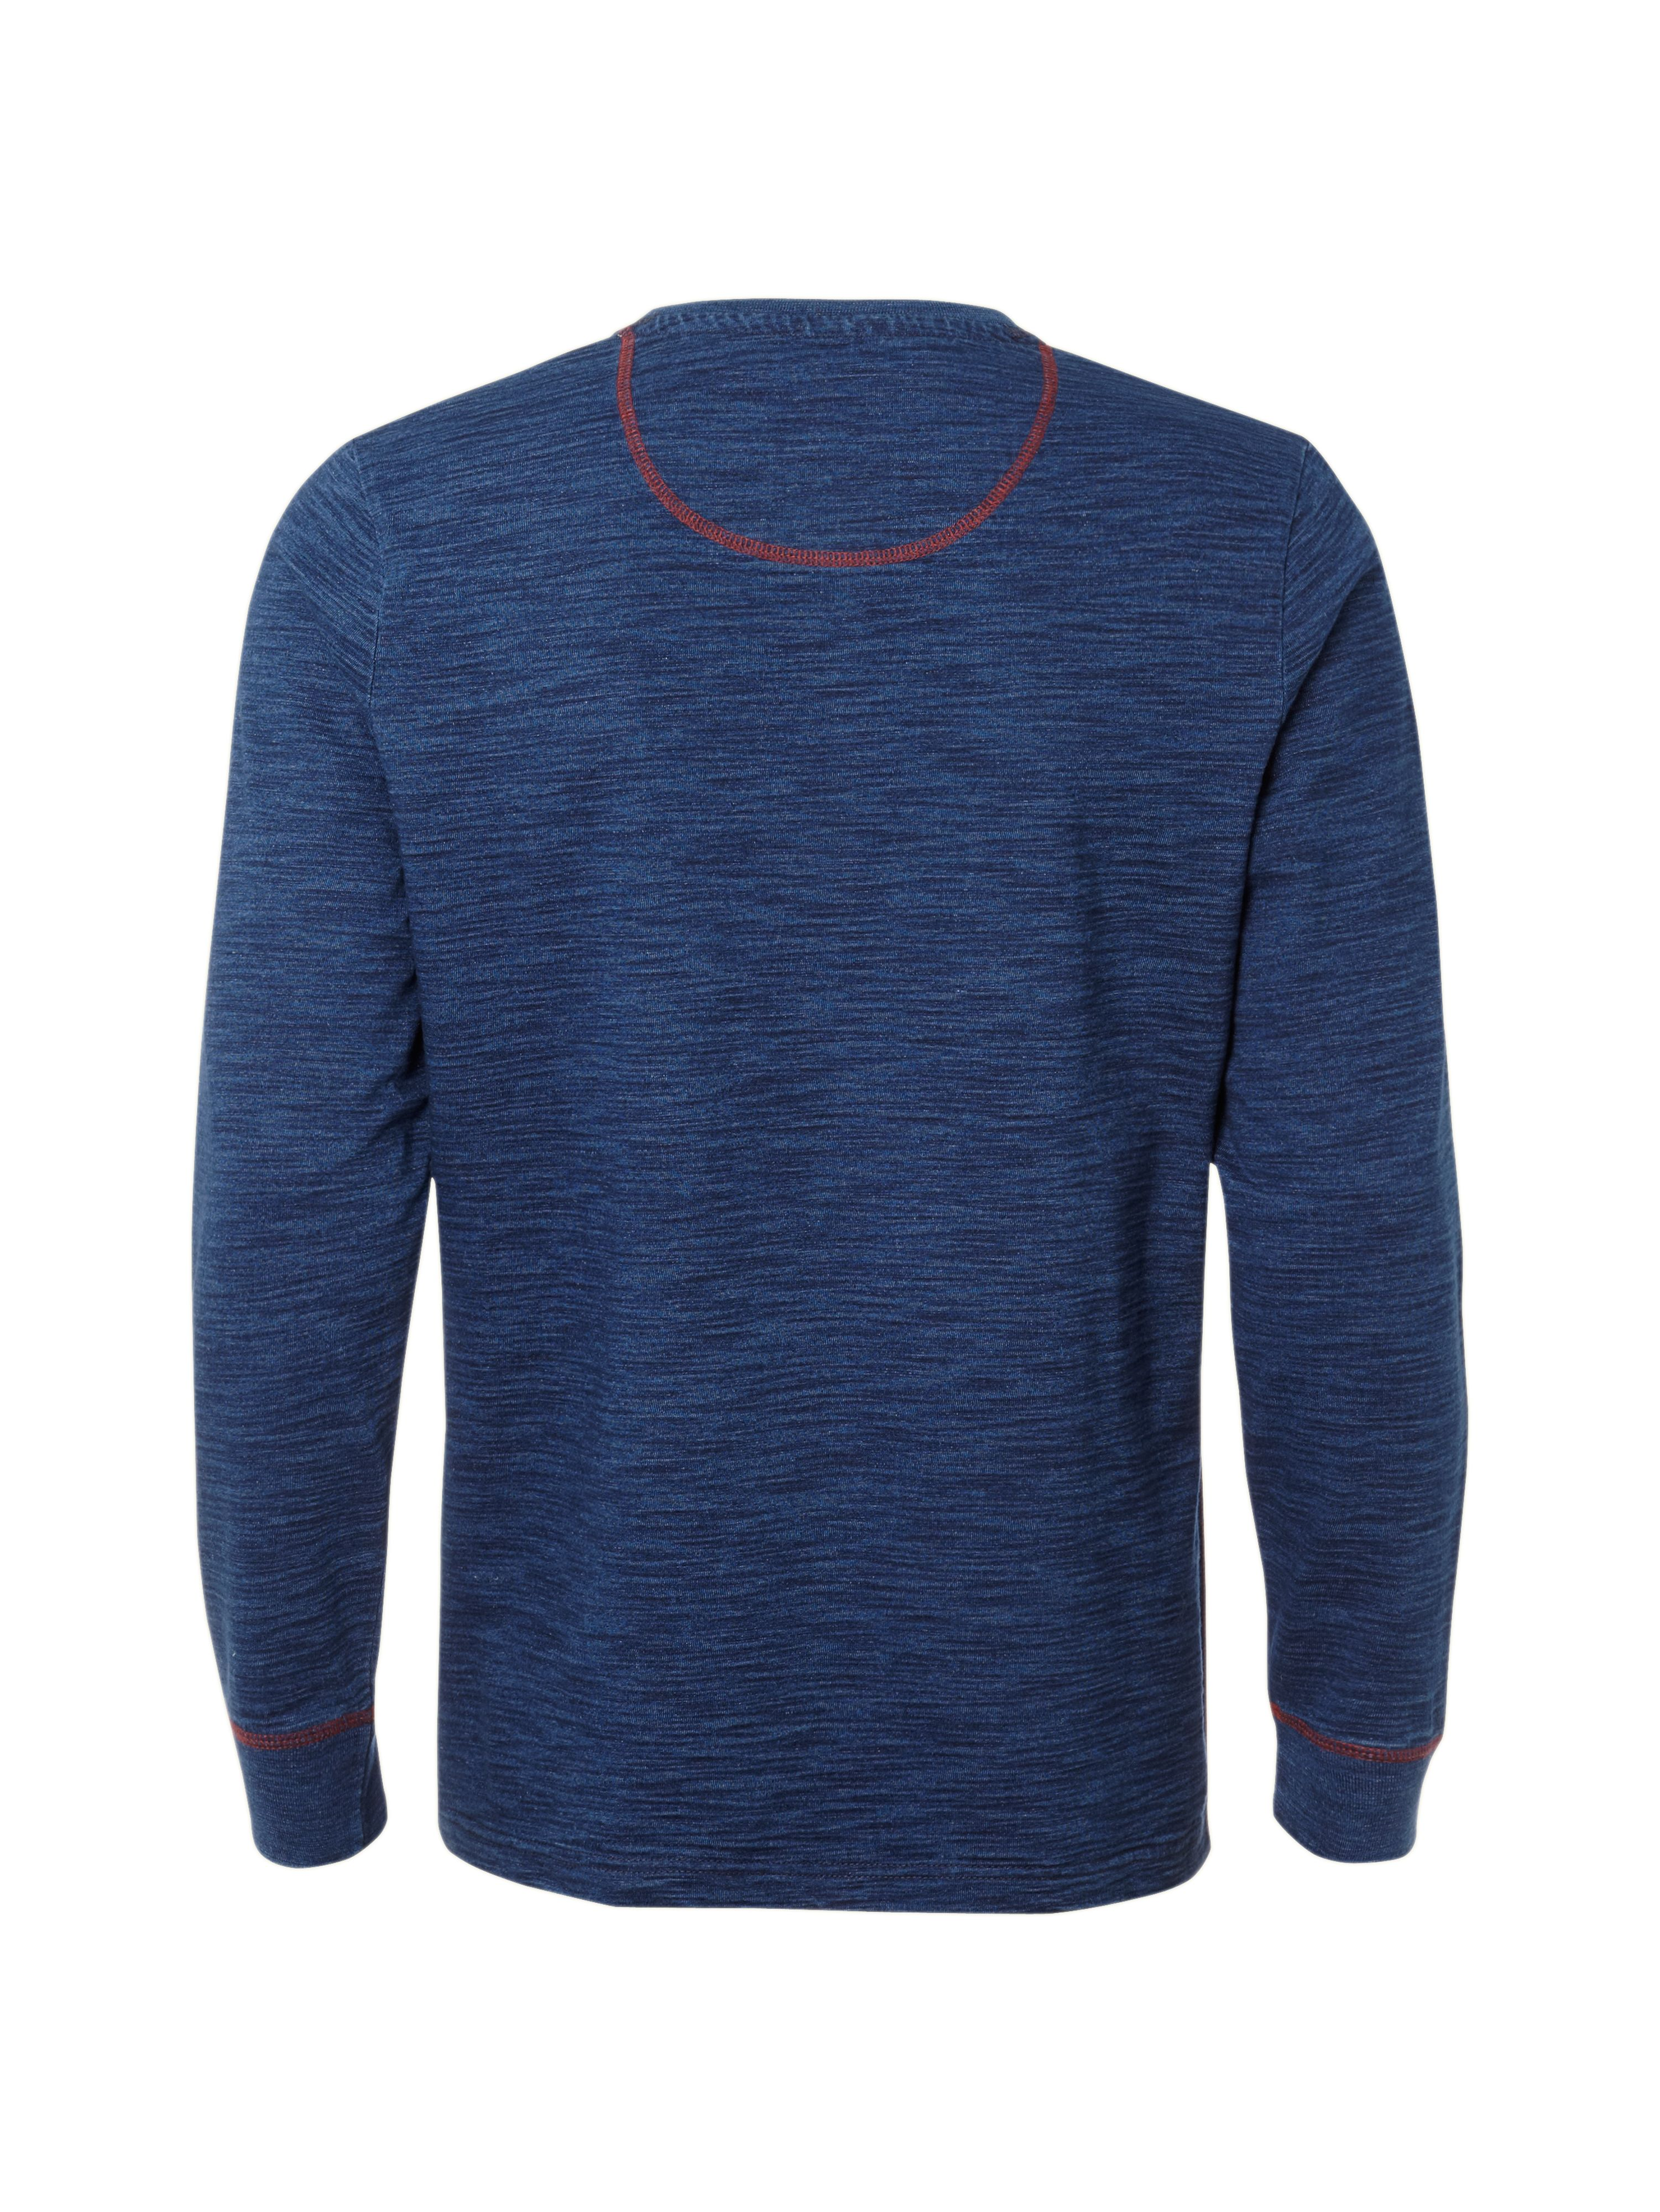 Plain indigo sweater